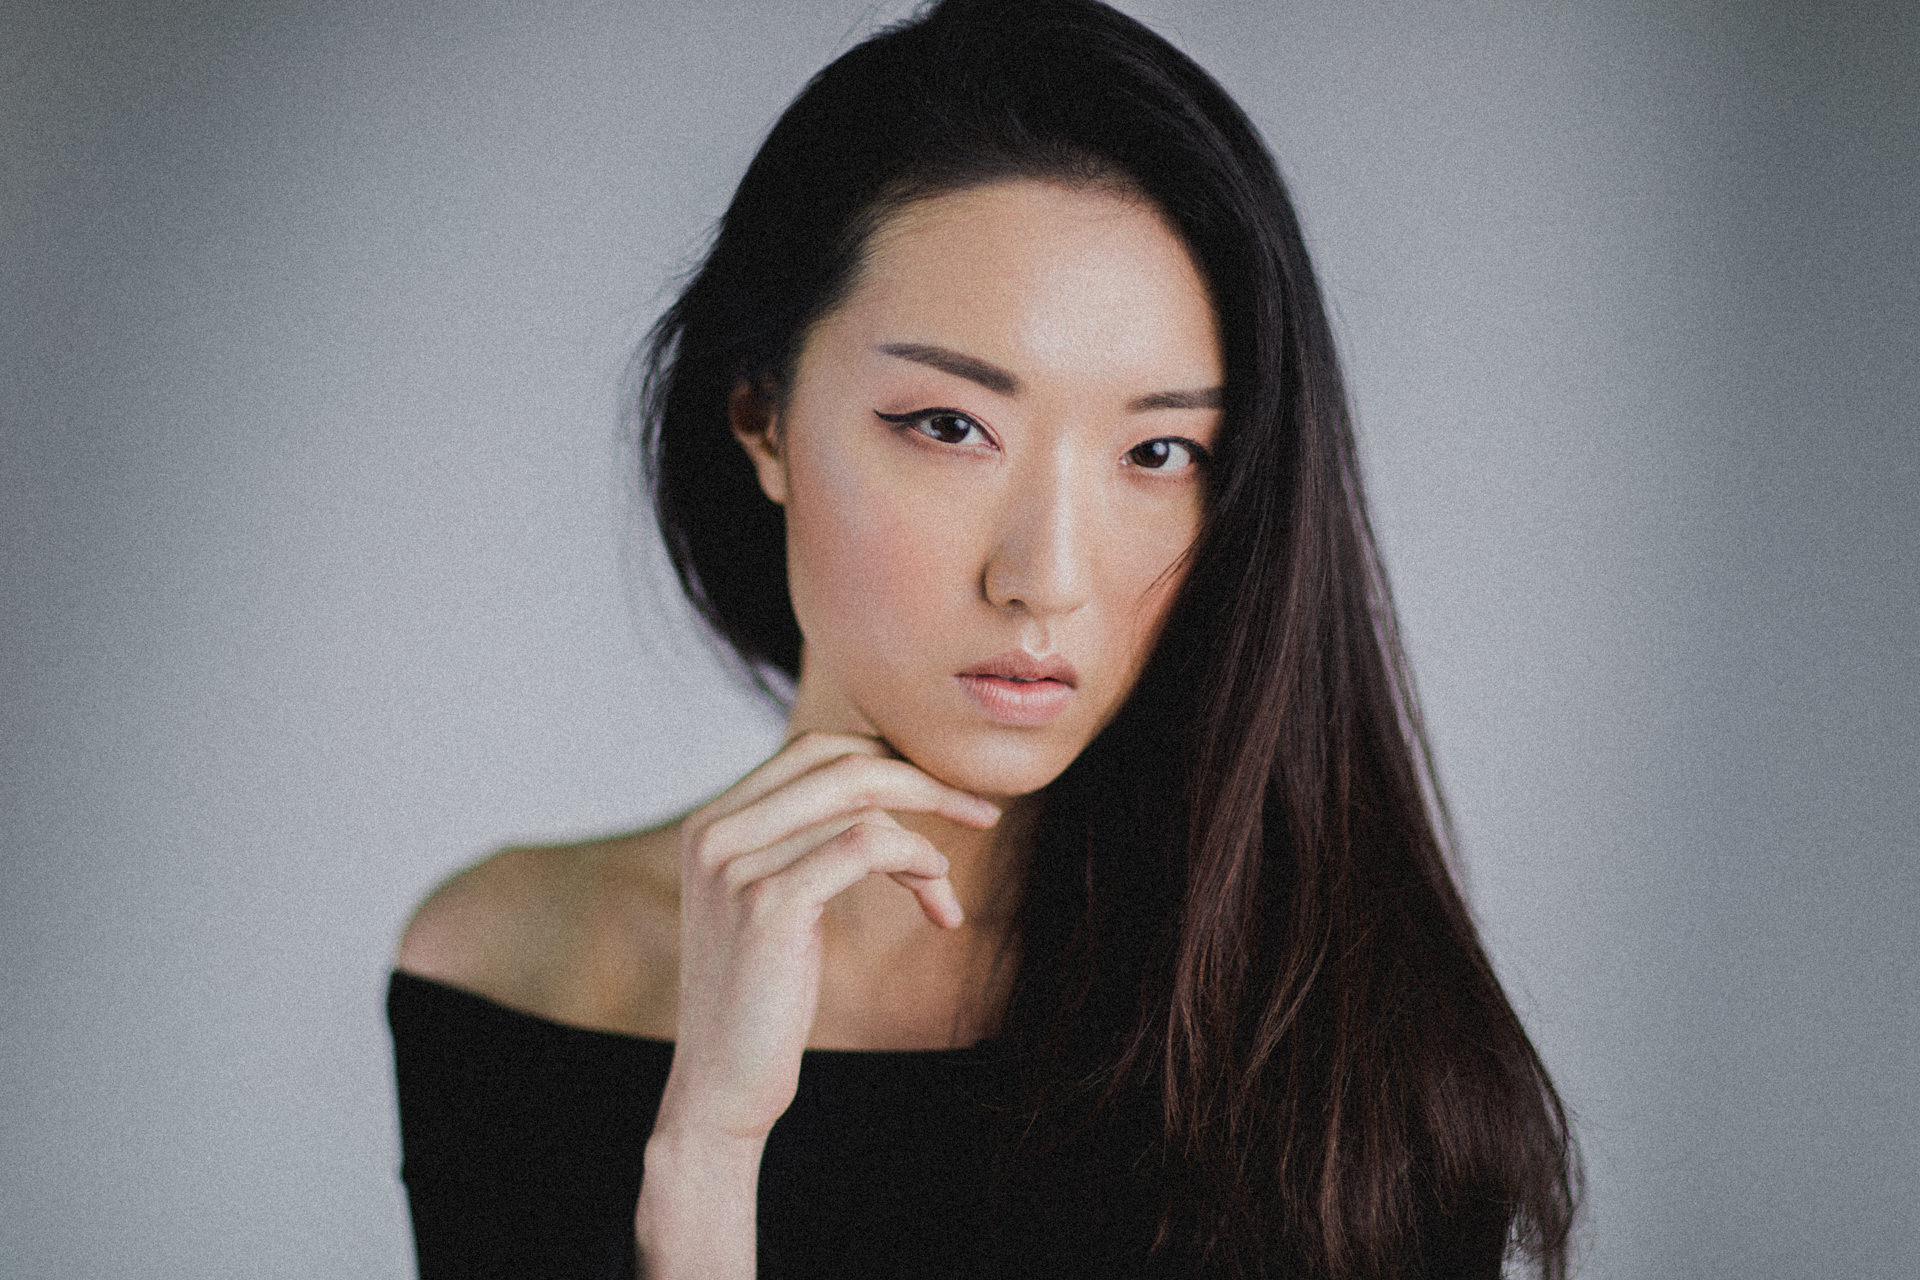 natural beauty photography in melbourne - black asian - stylish